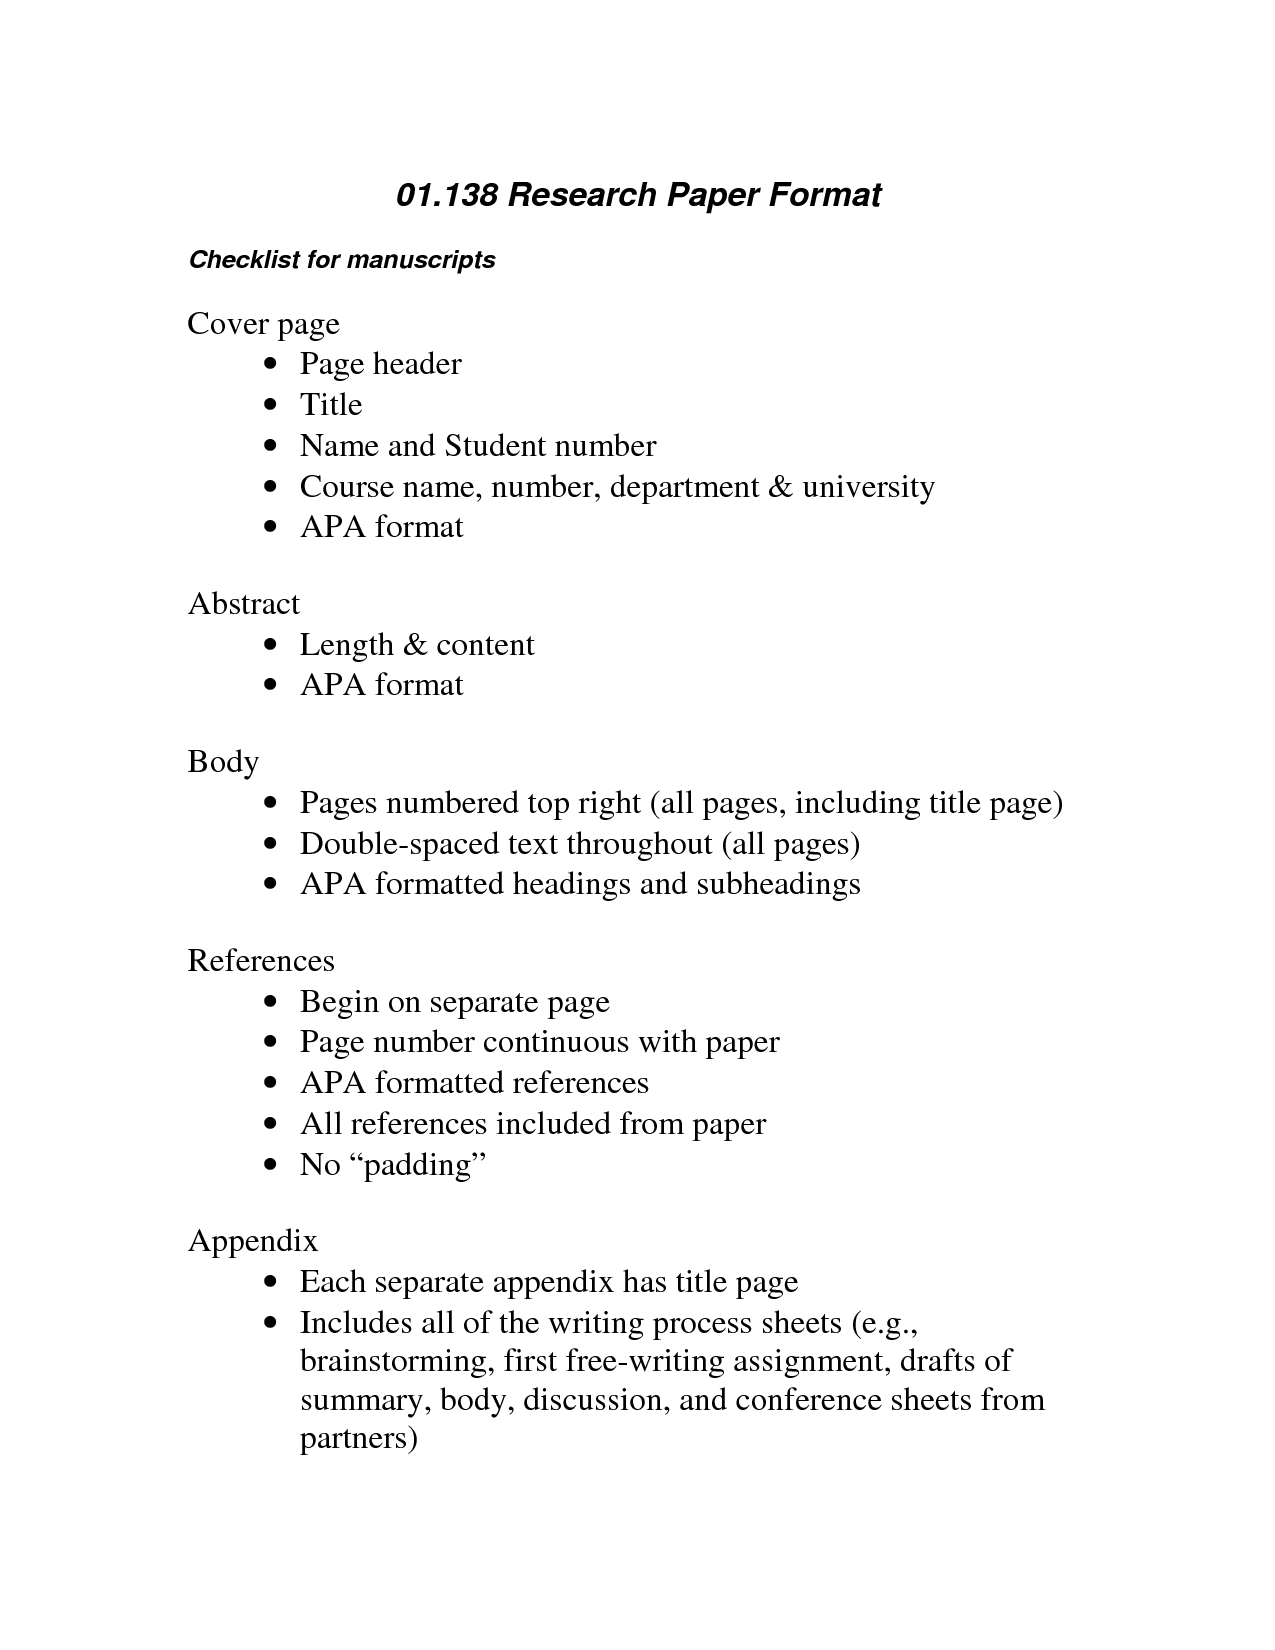 004 Research Paper Format Of Pdf Museumleg Apa Essay How To Reference A Article In